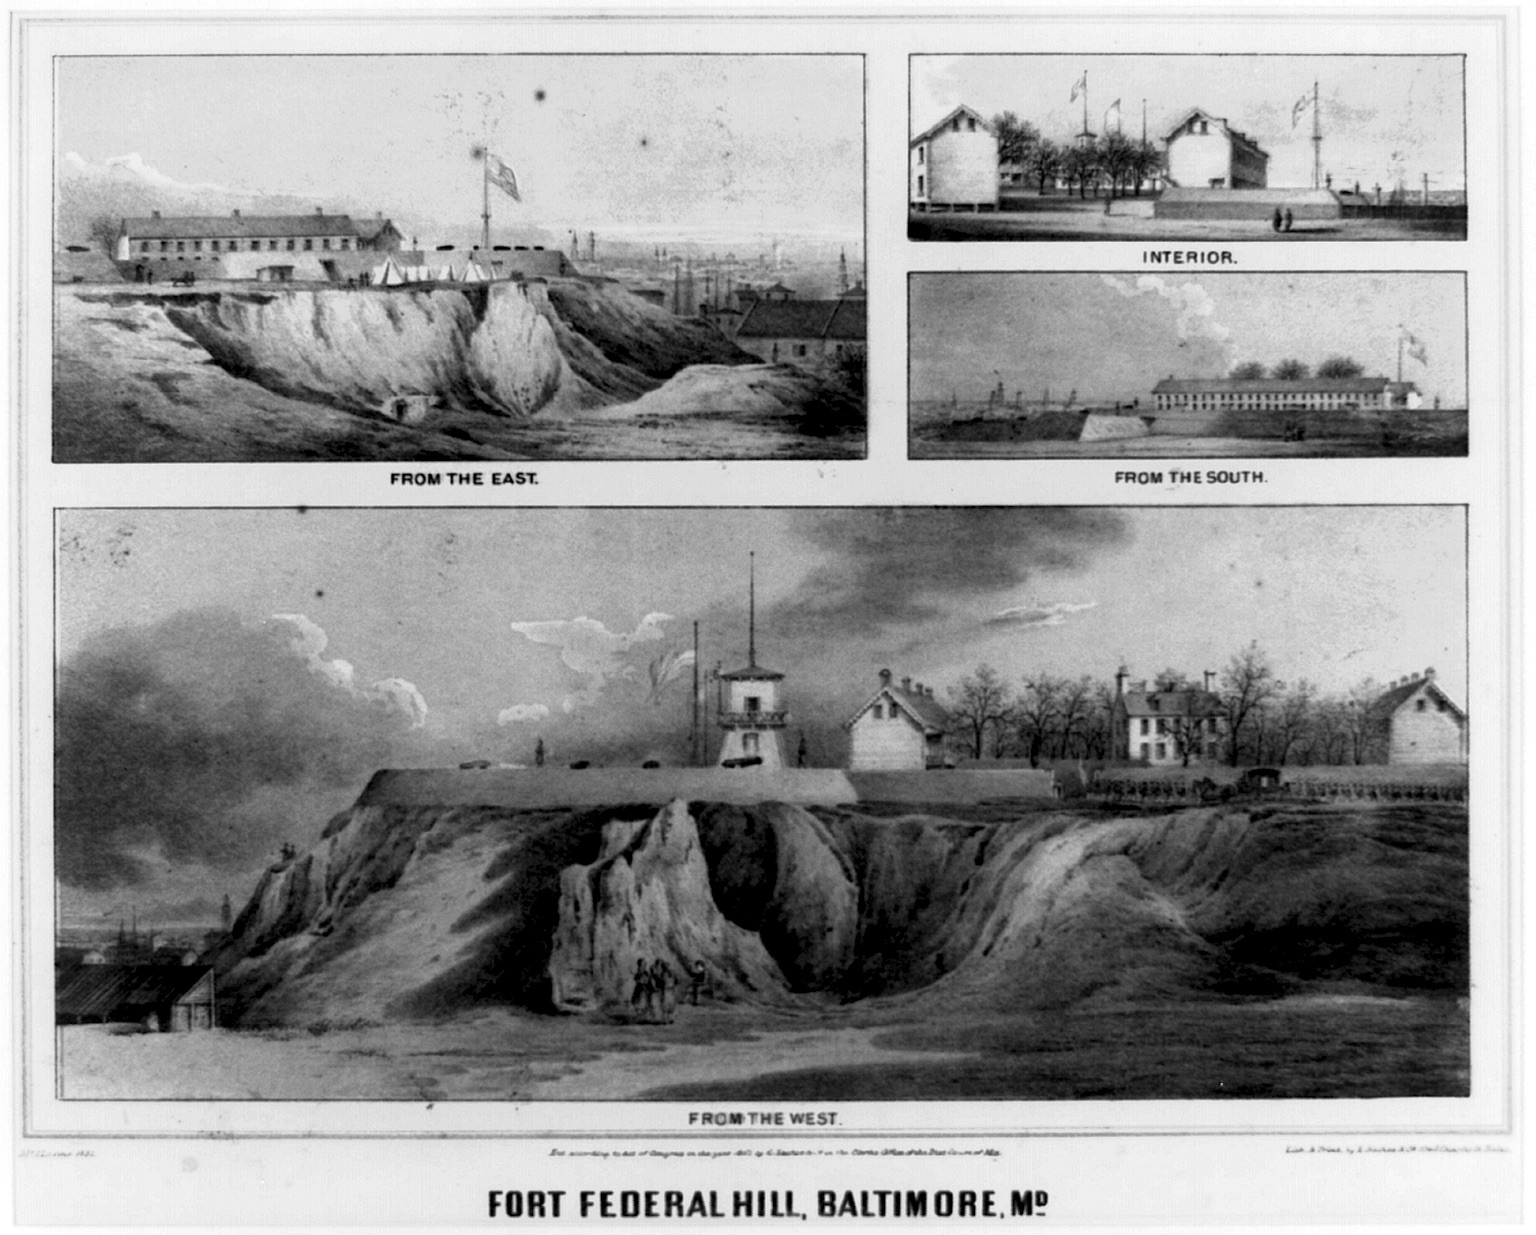 What Did Fort Federal Hill Look Like in 1862?